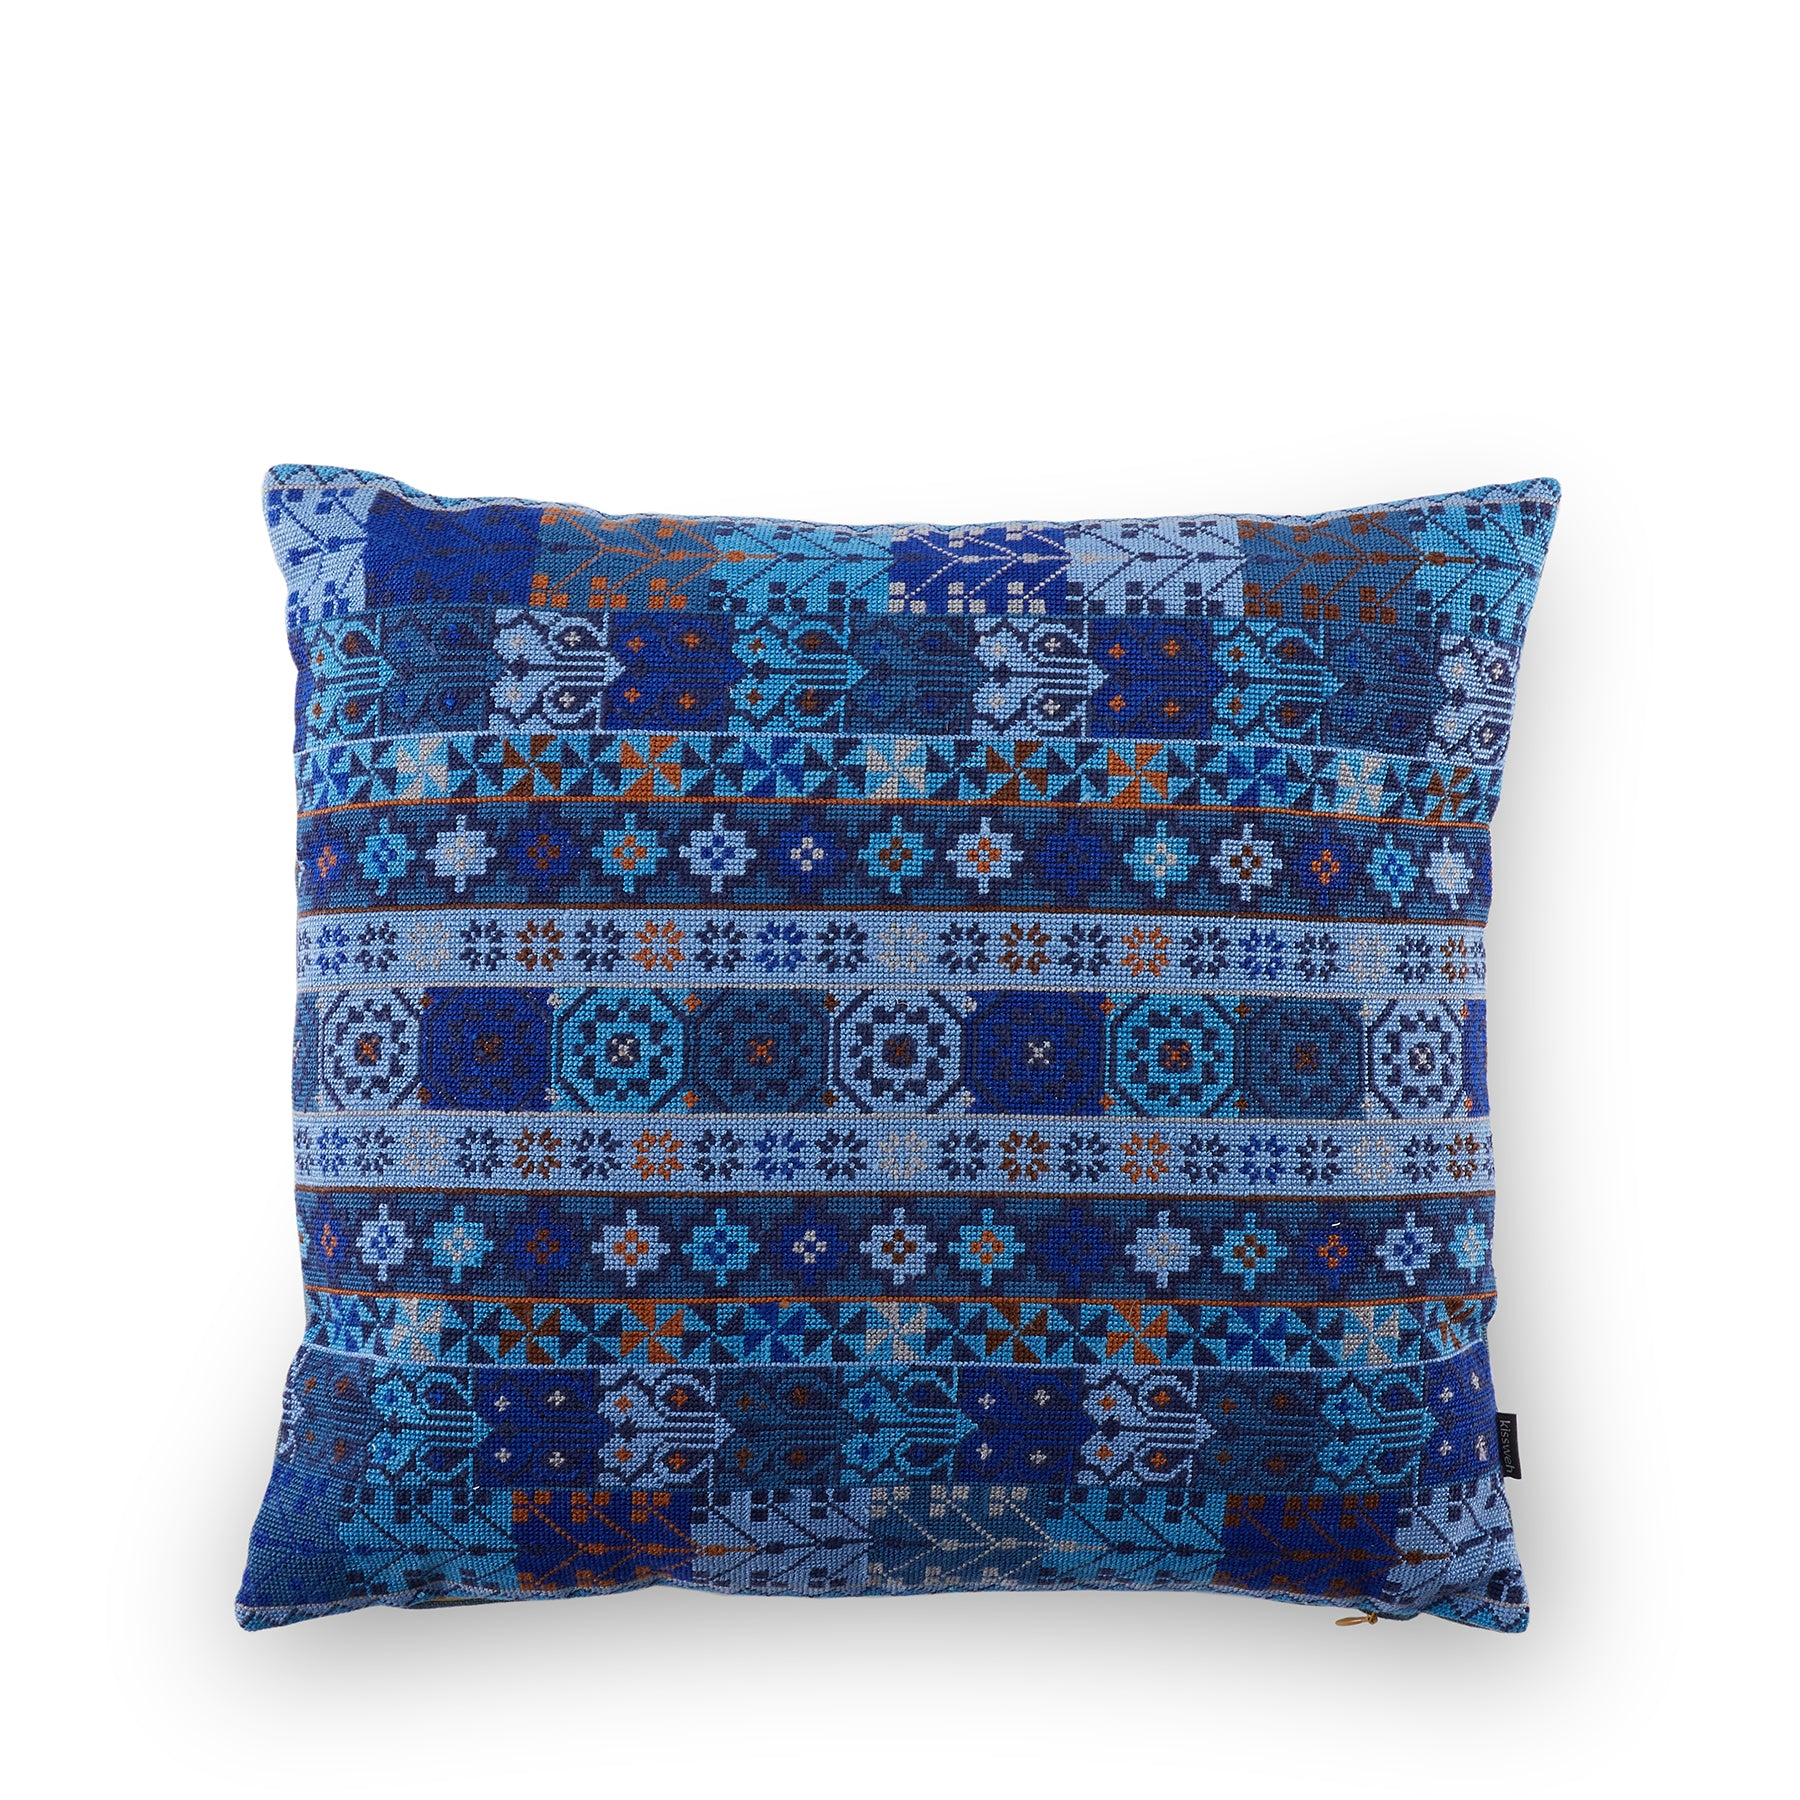 Malak Pillow in Indigo Zoom Image 1